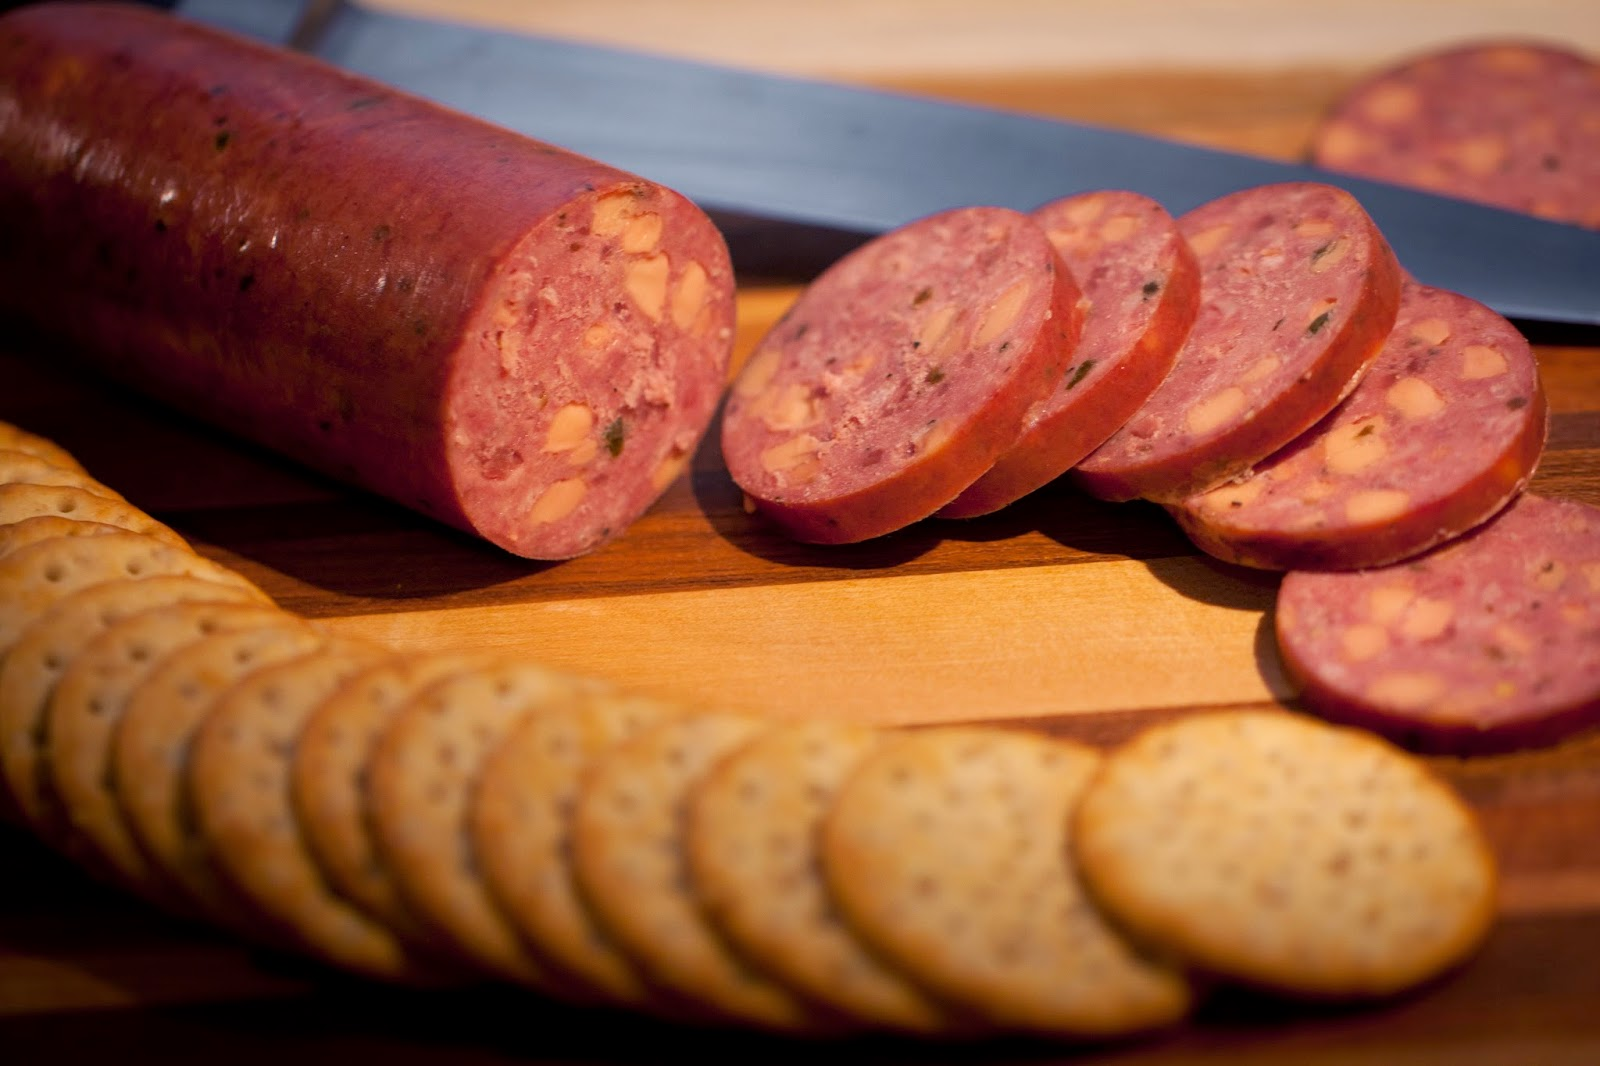 http://www.nebraskabison.com/collections/bison-sausages/products/jalapeno-cheddar-bison-summer-sausage